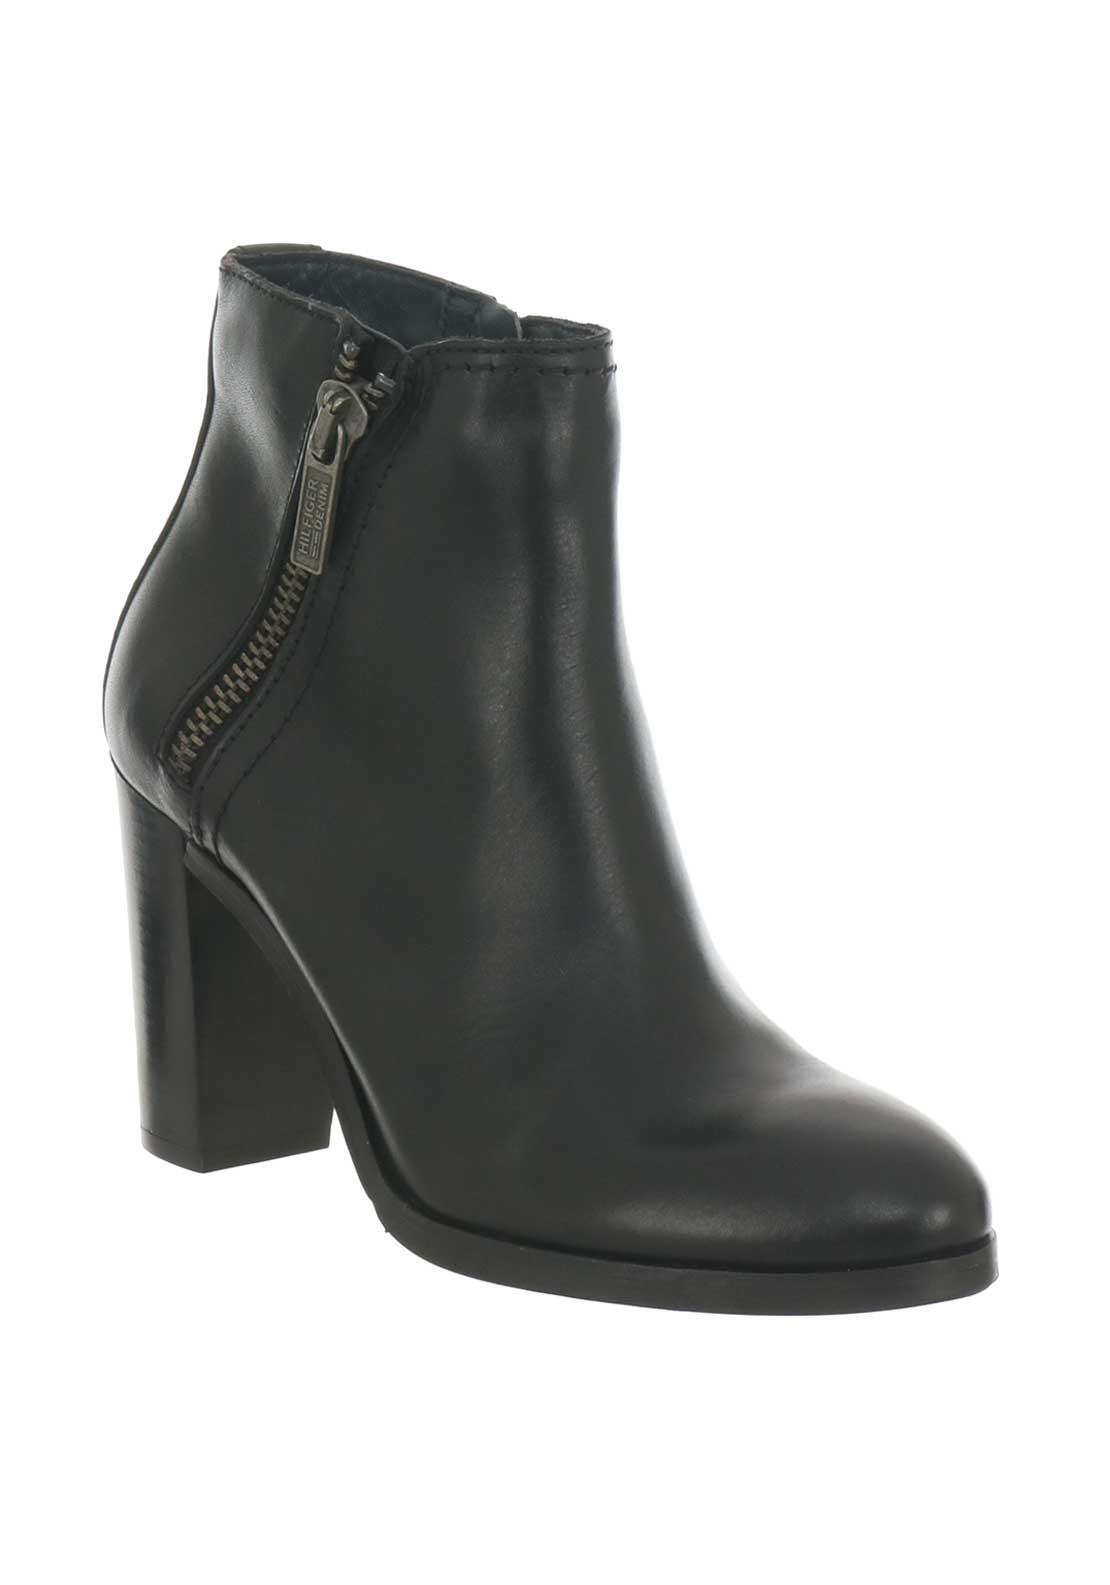 39eb253f376c Tommy Hilfiger Womens Leather Zip Heeled Boots